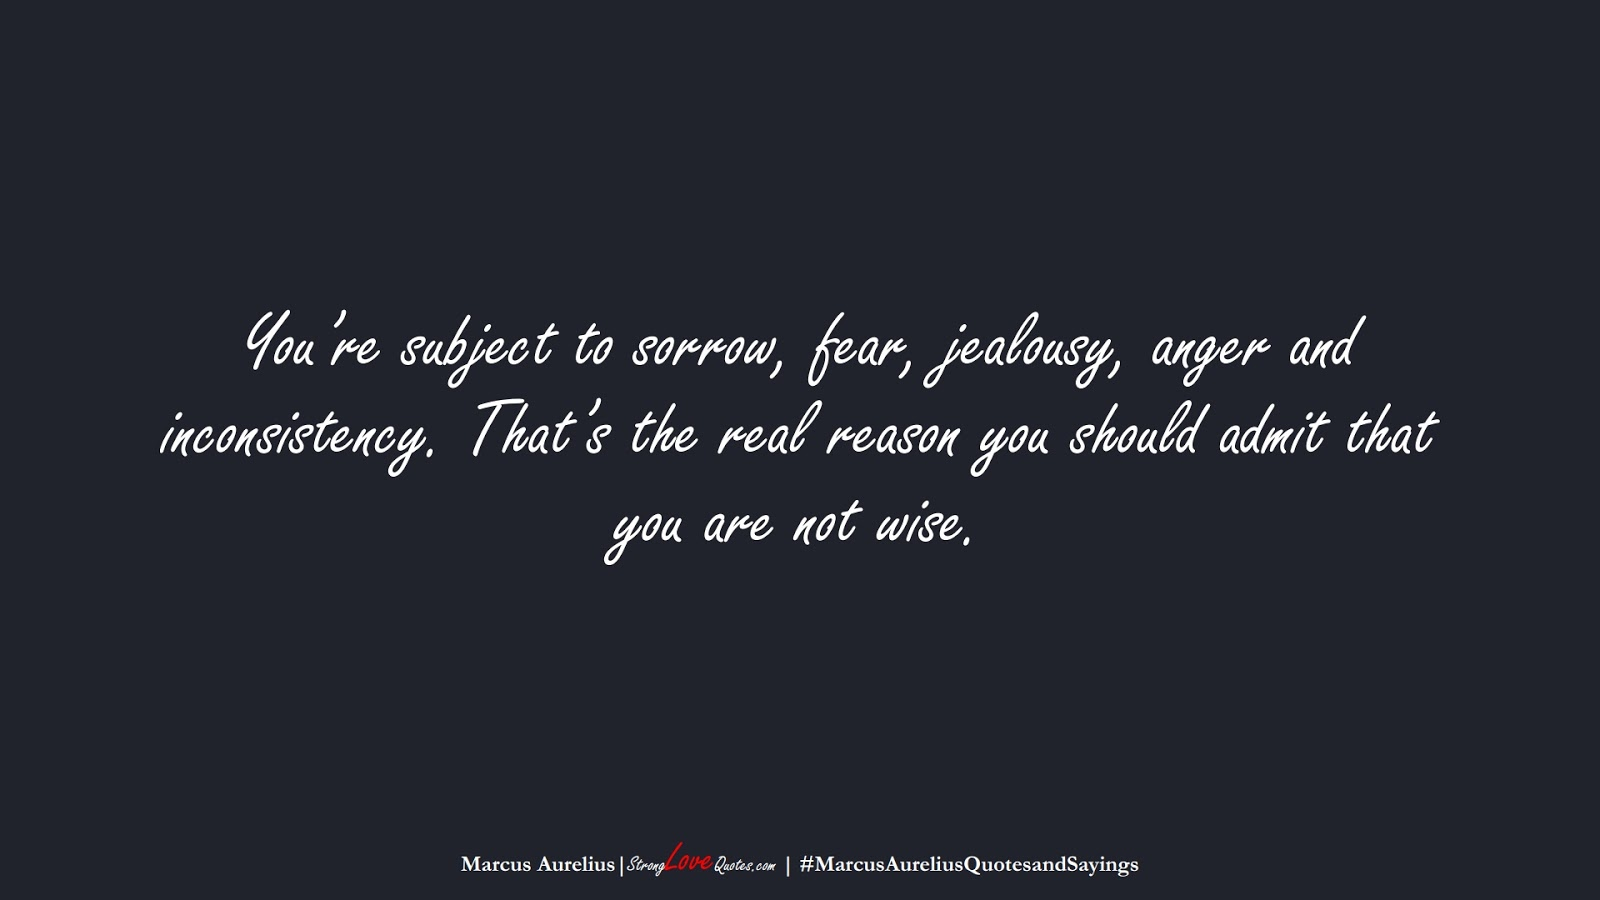 You're subject to sorrow, fear, jealousy, anger and inconsistency. That's the real reason you should admit that you are not wise. (Marcus Aurelius);  #MarcusAureliusQuotesandSayings